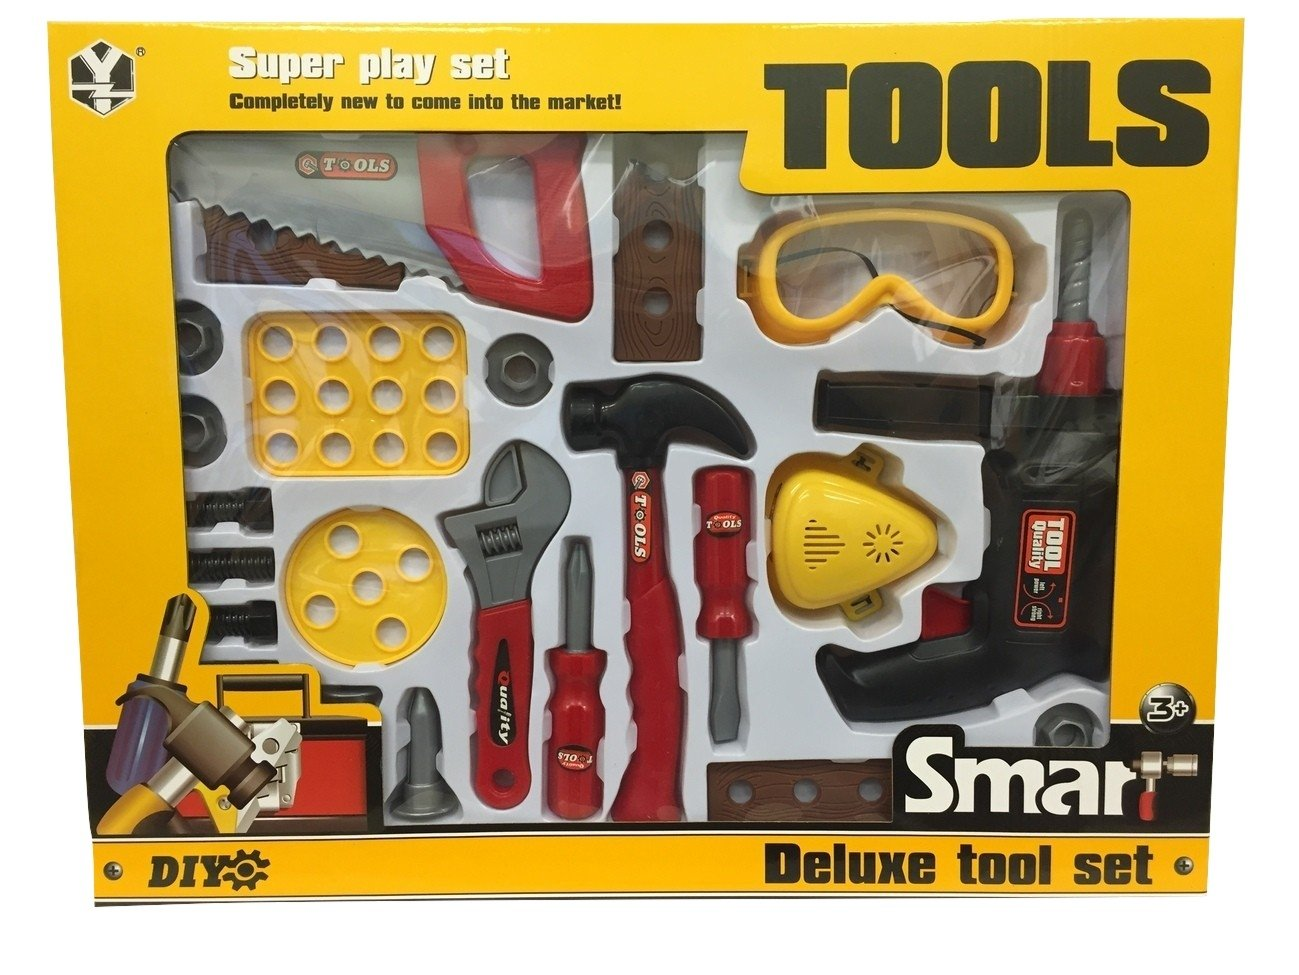 BOYS KIDS CHILDRENS ROLE PLAY BUILDER 22 PC DELUXE TOOL SET DRILL TOOLS IN BOX Rostrad ®